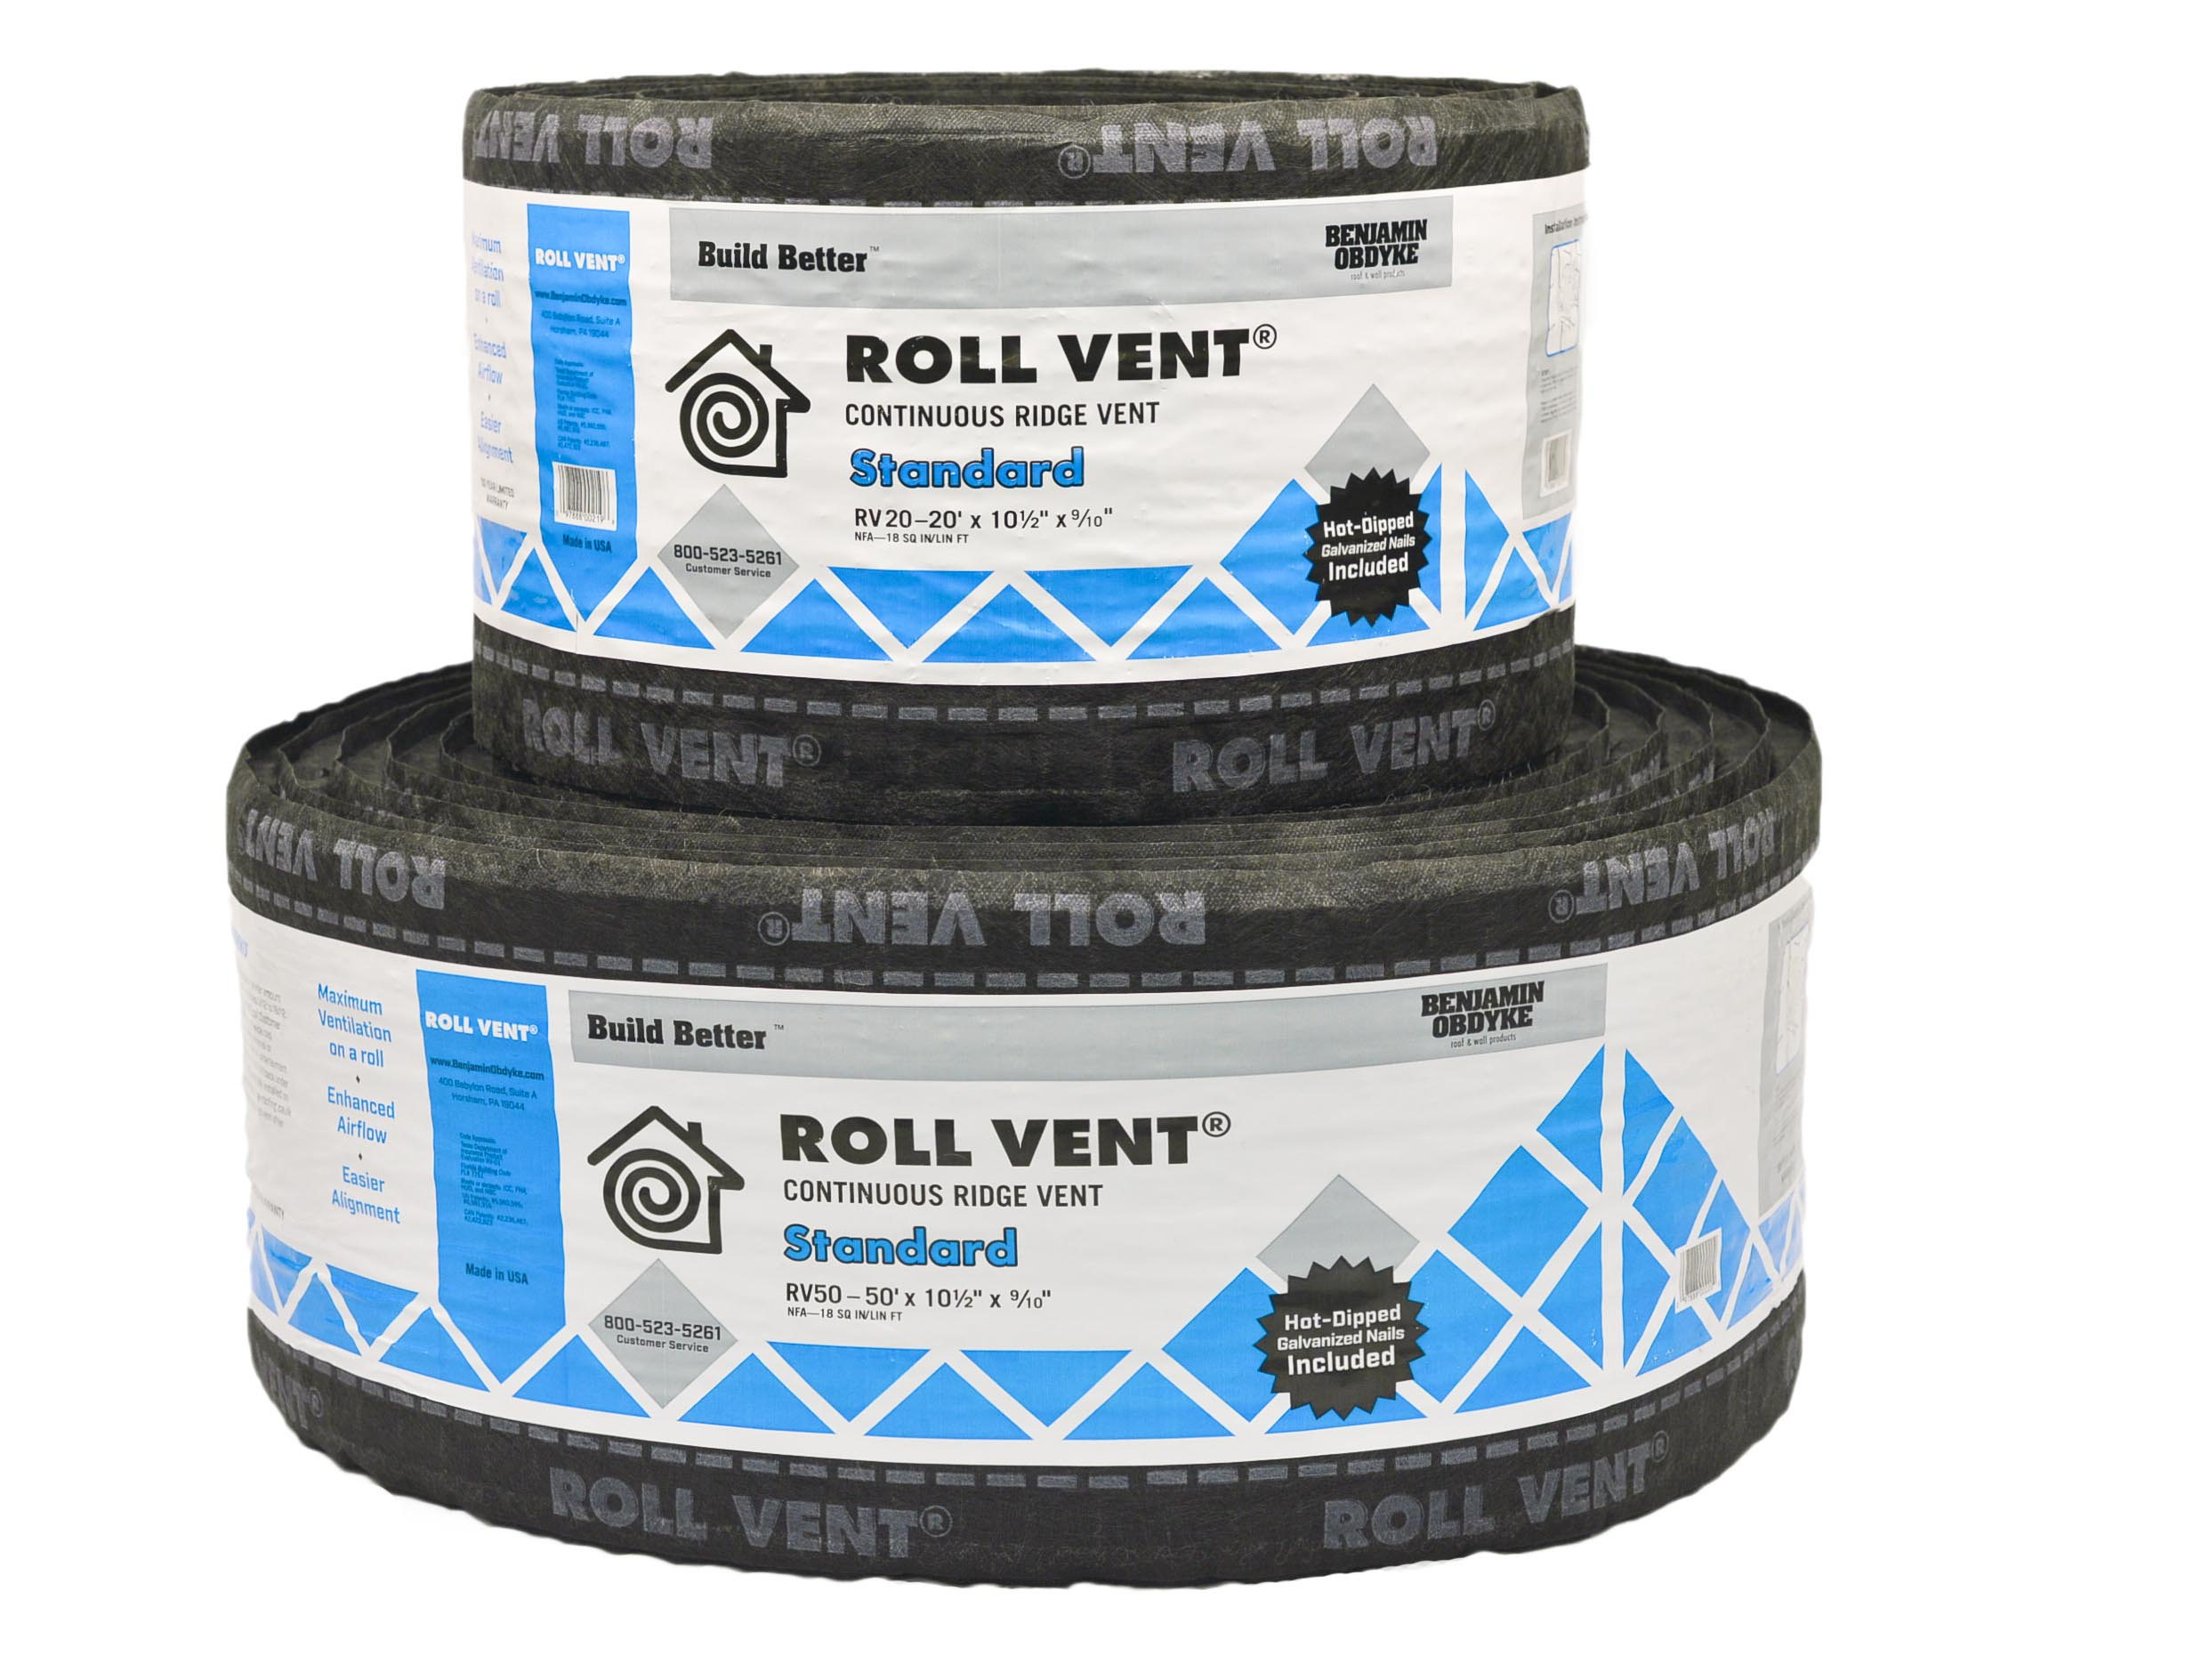 roll vent 20 50 new packaging